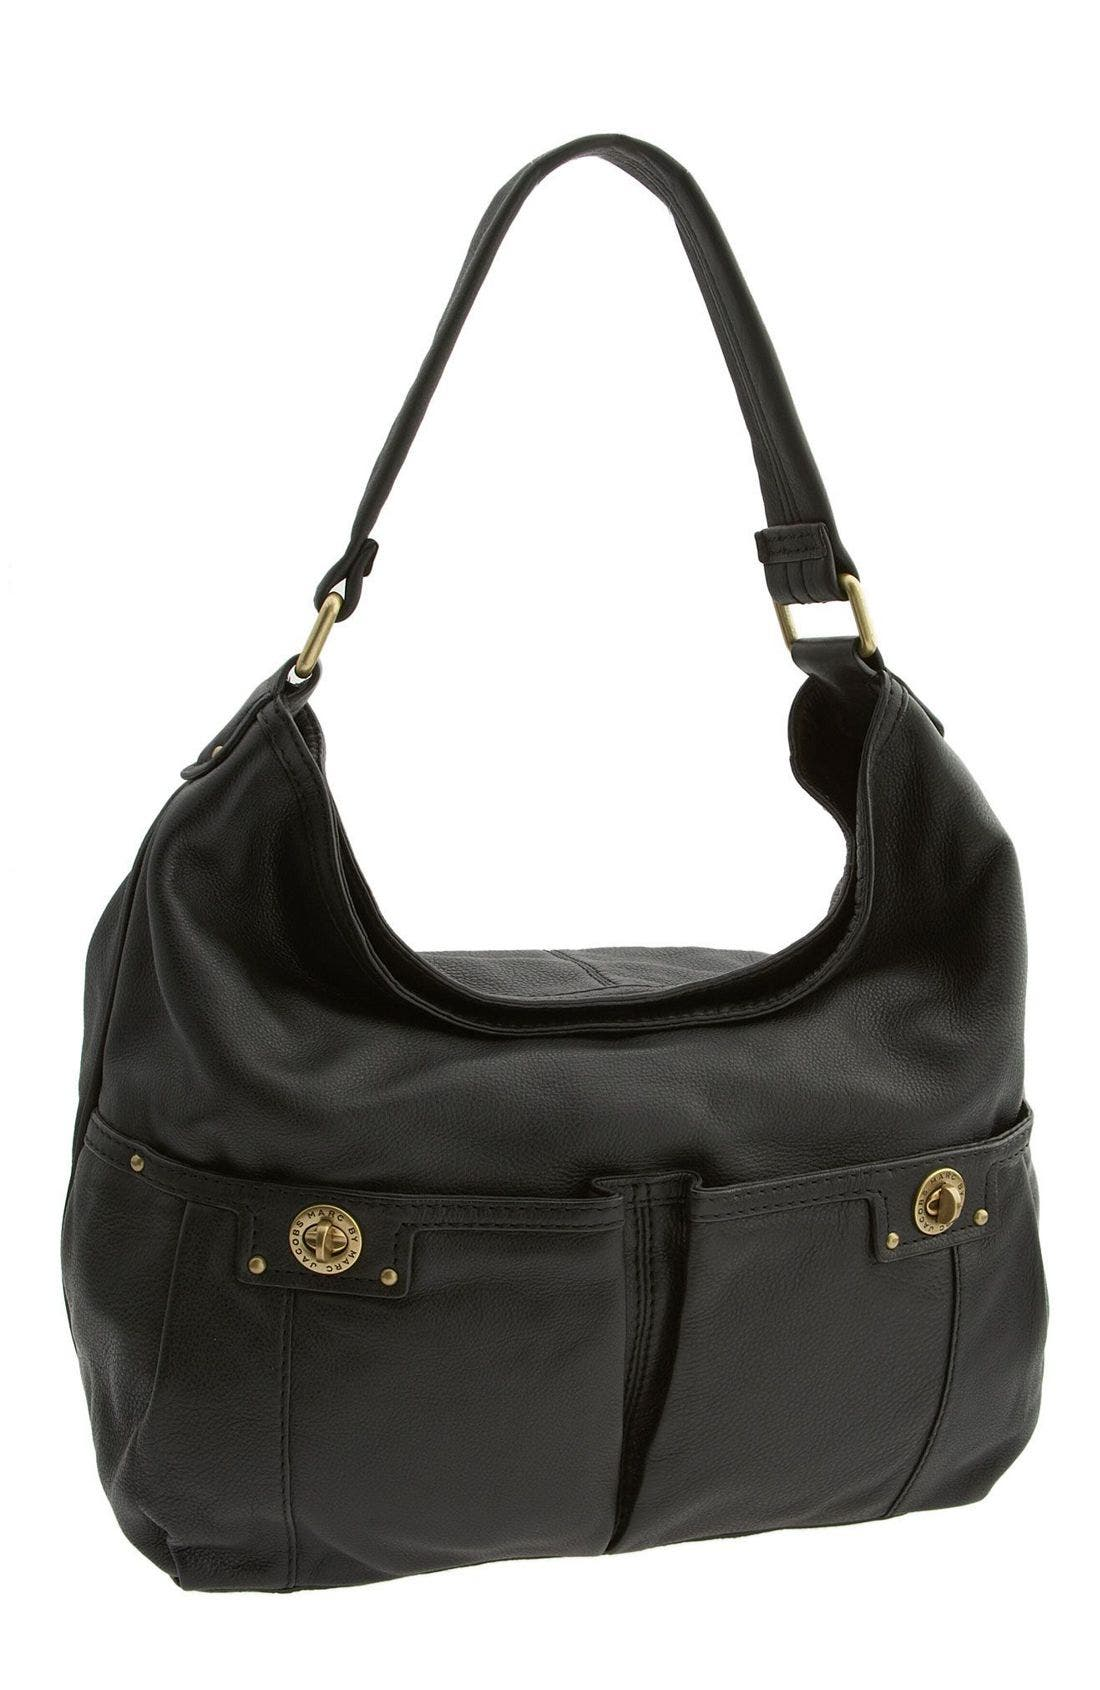 MARC BY MARC JACOBS 'Totally Turnlock - Faridah' Hobo Bag, Main, color, 001